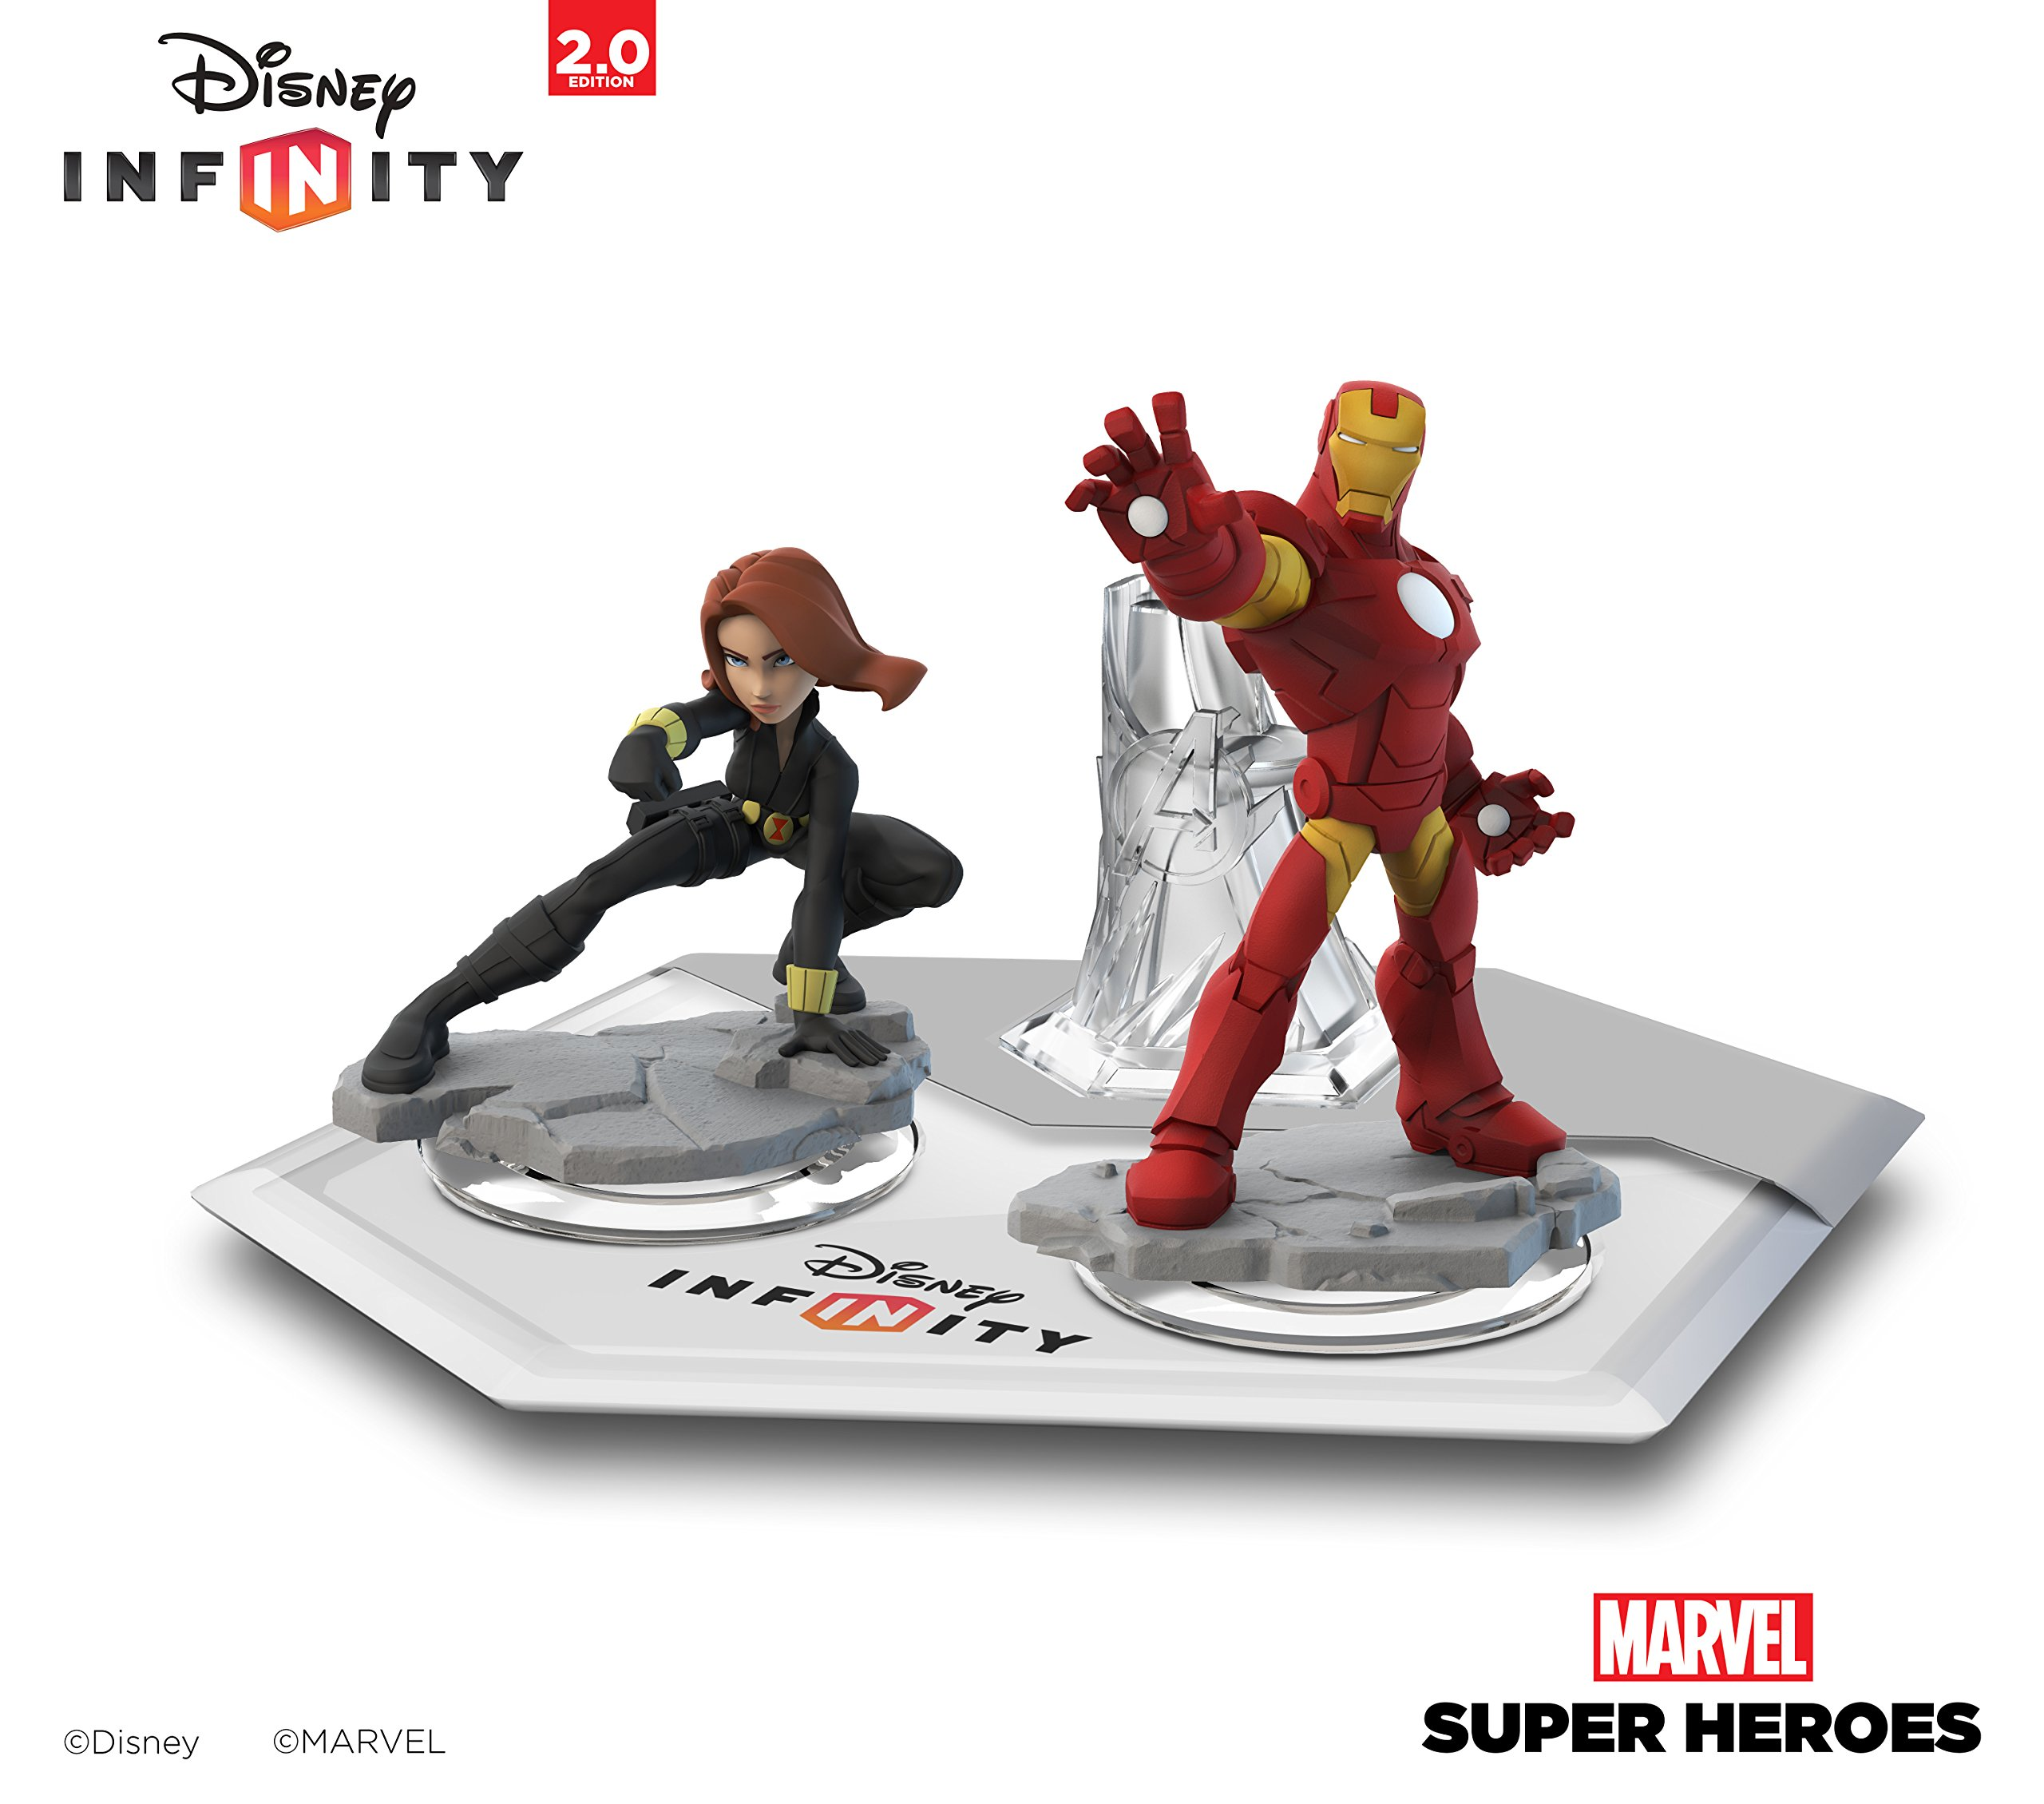 infinity marvel talks disney and heroes articles toybox mar wars provided no john vignocchi star super caption hero